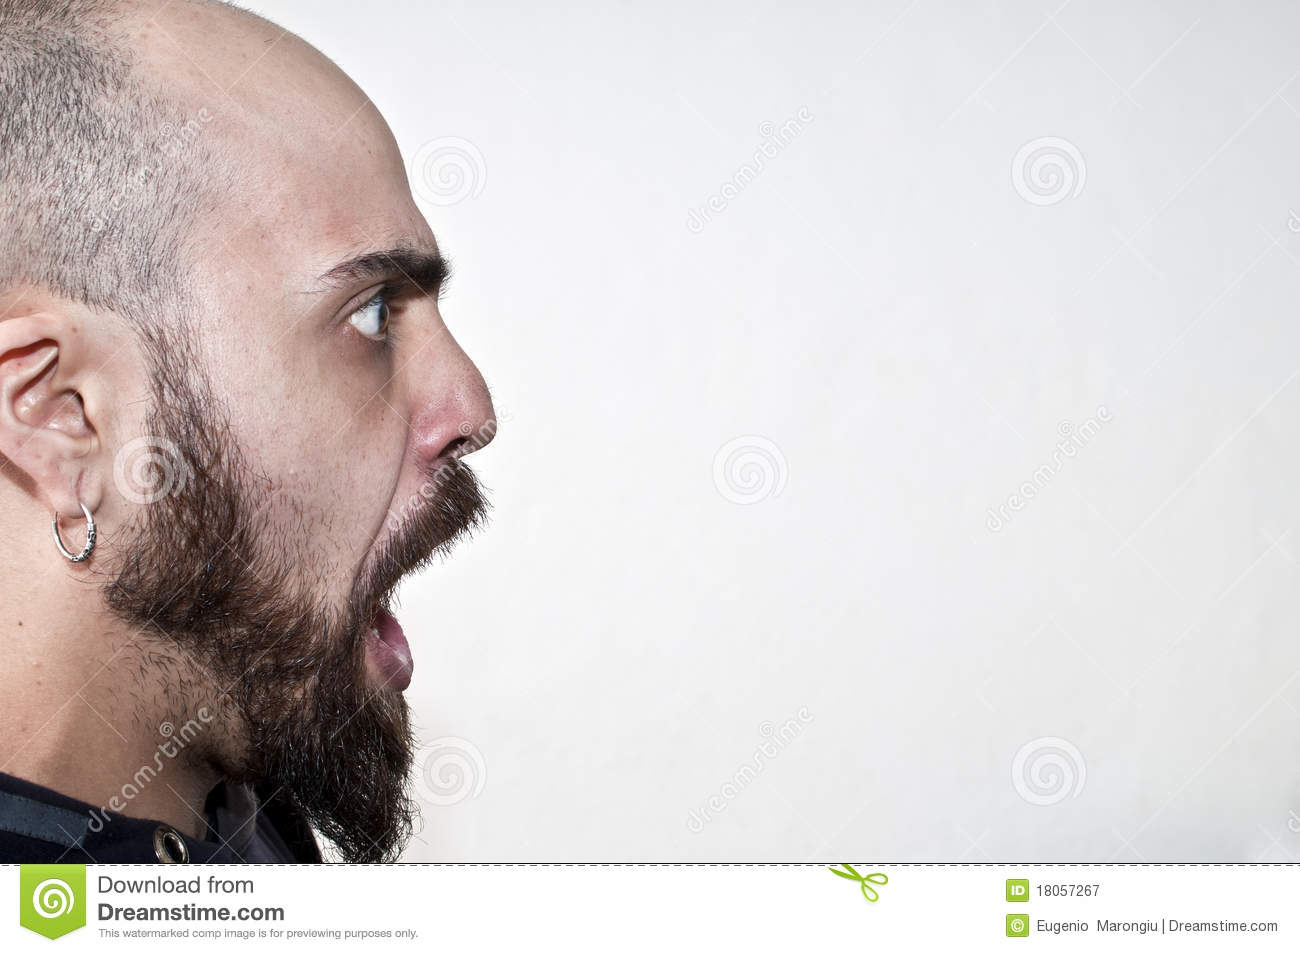 Man Caught With His Mouth Open Royalty Free Stock Photography Image 18057267